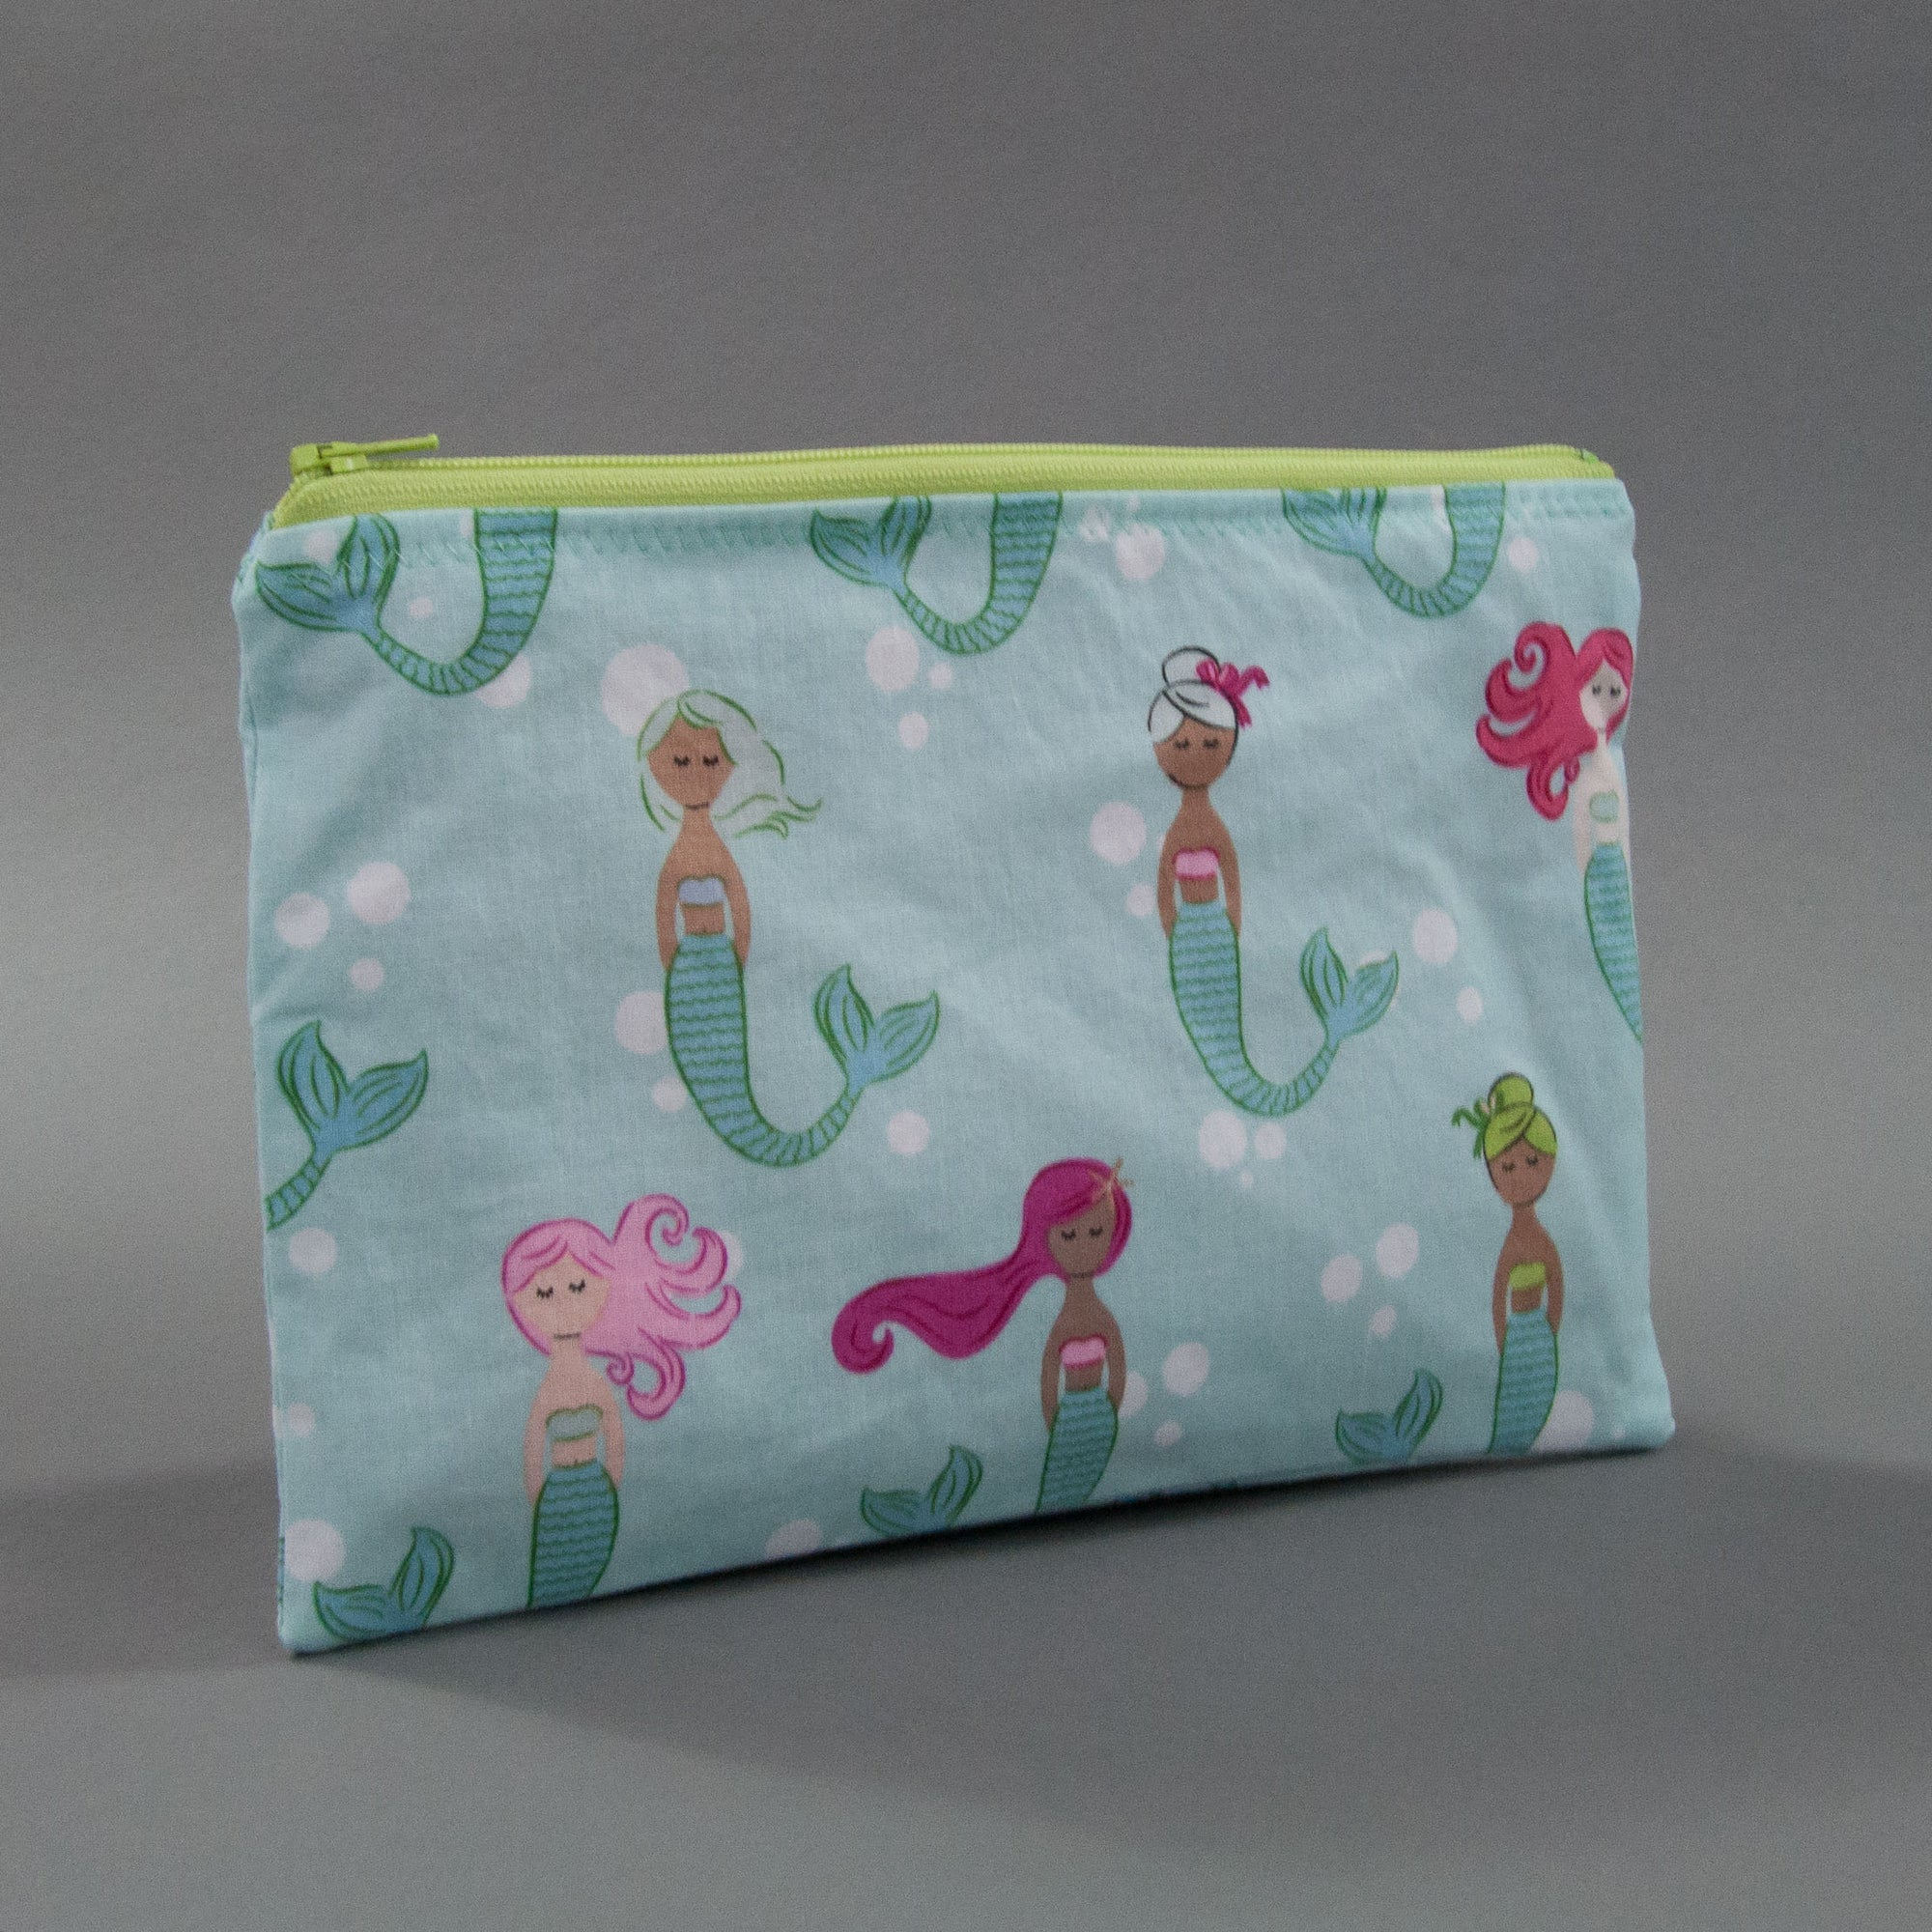 Mermaids Zippy Bag